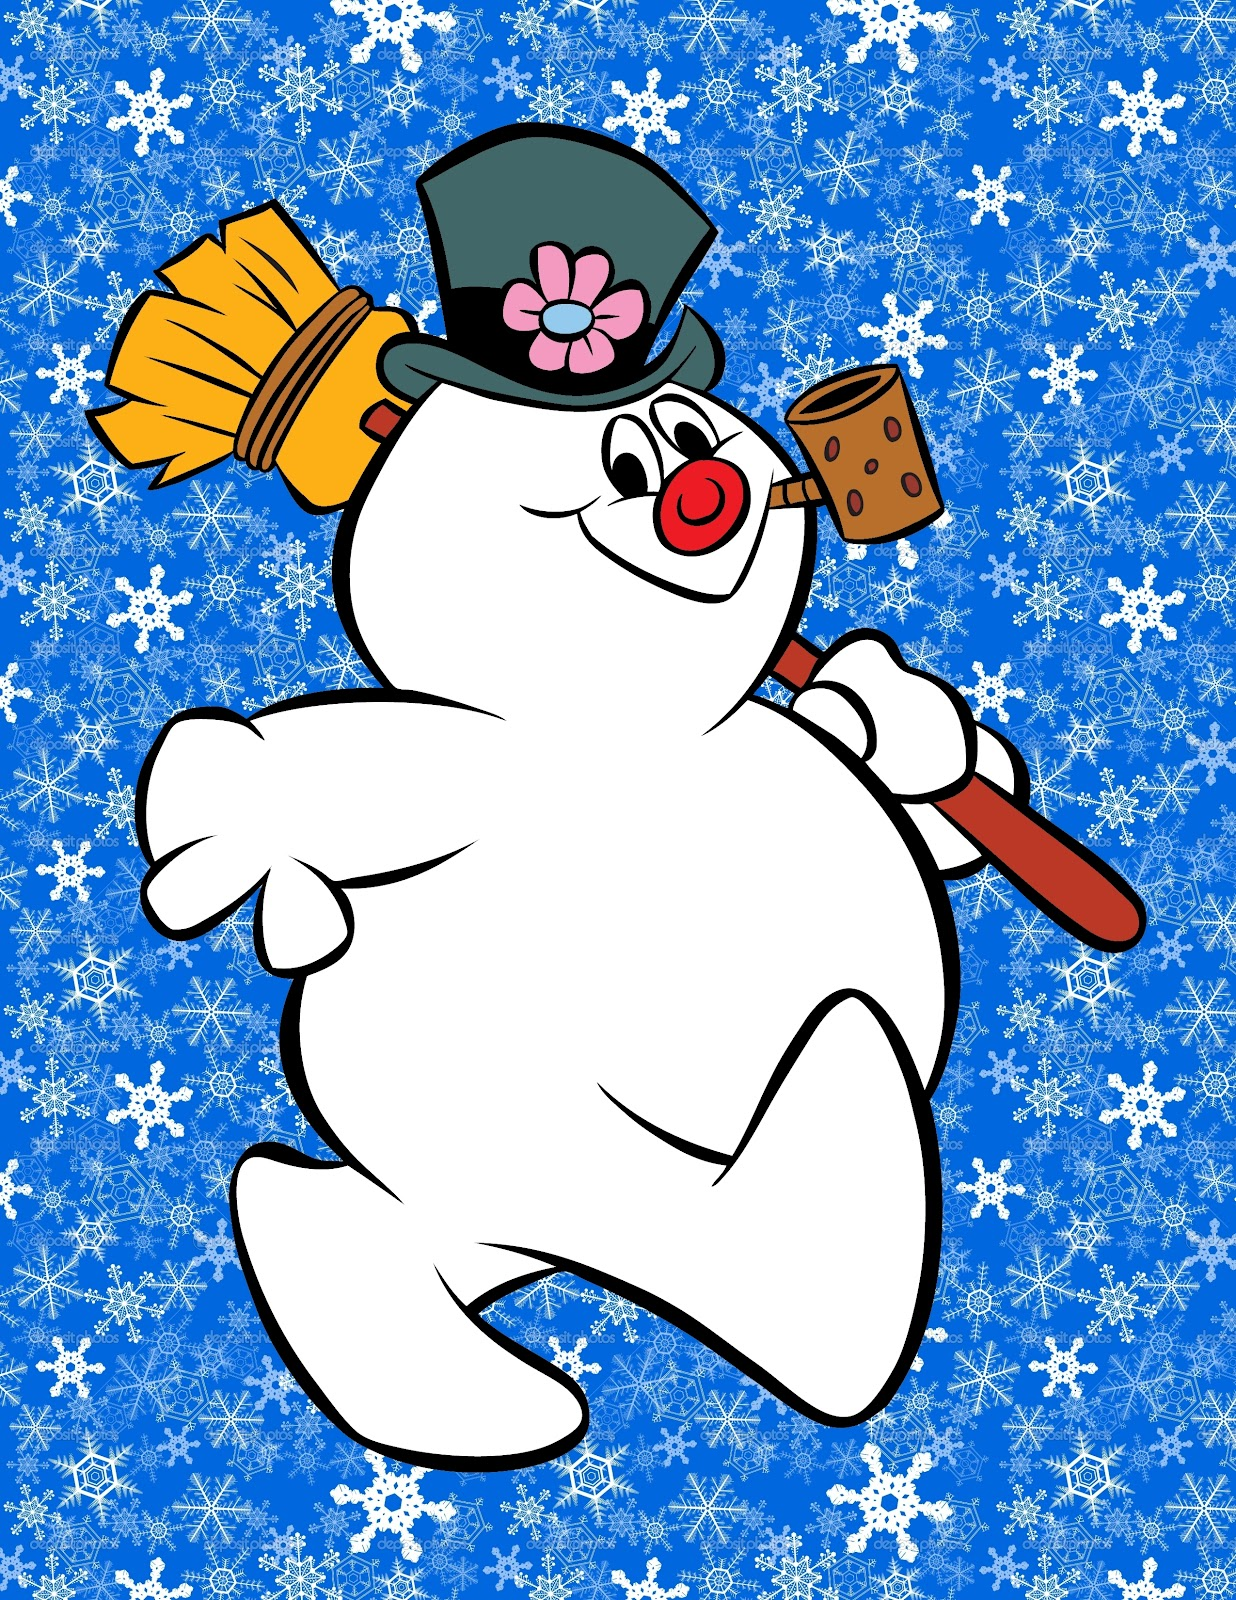 Patrick Owsley Cartoon Art and More!: FROSTY!